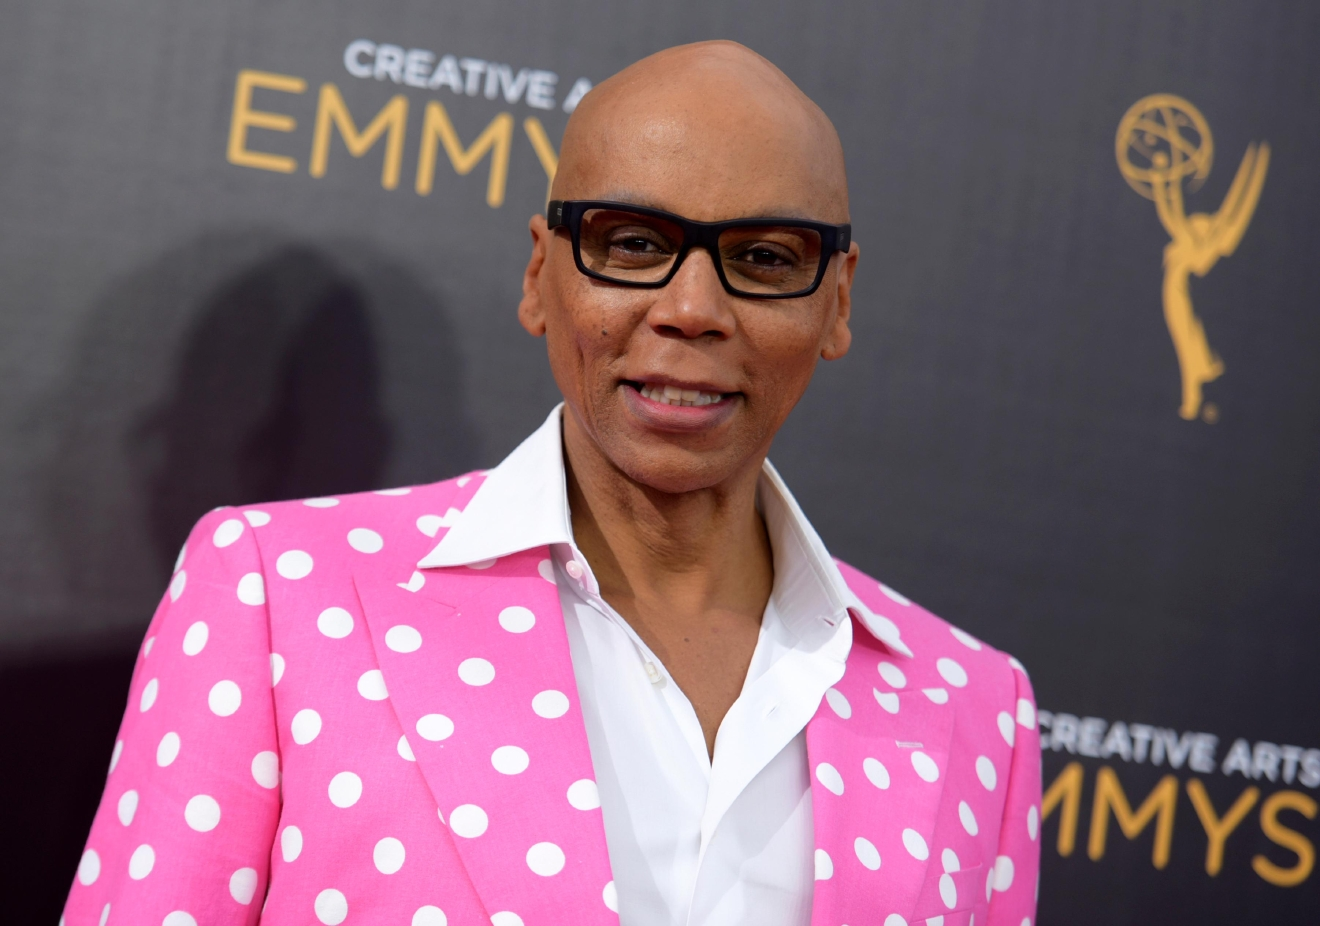 FILE - In this Sept. 11, 2016 file photo, RuPaul Charles arrives at night two of the Creative Arts Emmy Awards in Los Angeles. RuPaul announced Wednesday, March 15, 2017, that he married his longtime boyfriend in January. (Photo by Richard Shotwell/Invision/AP, File)